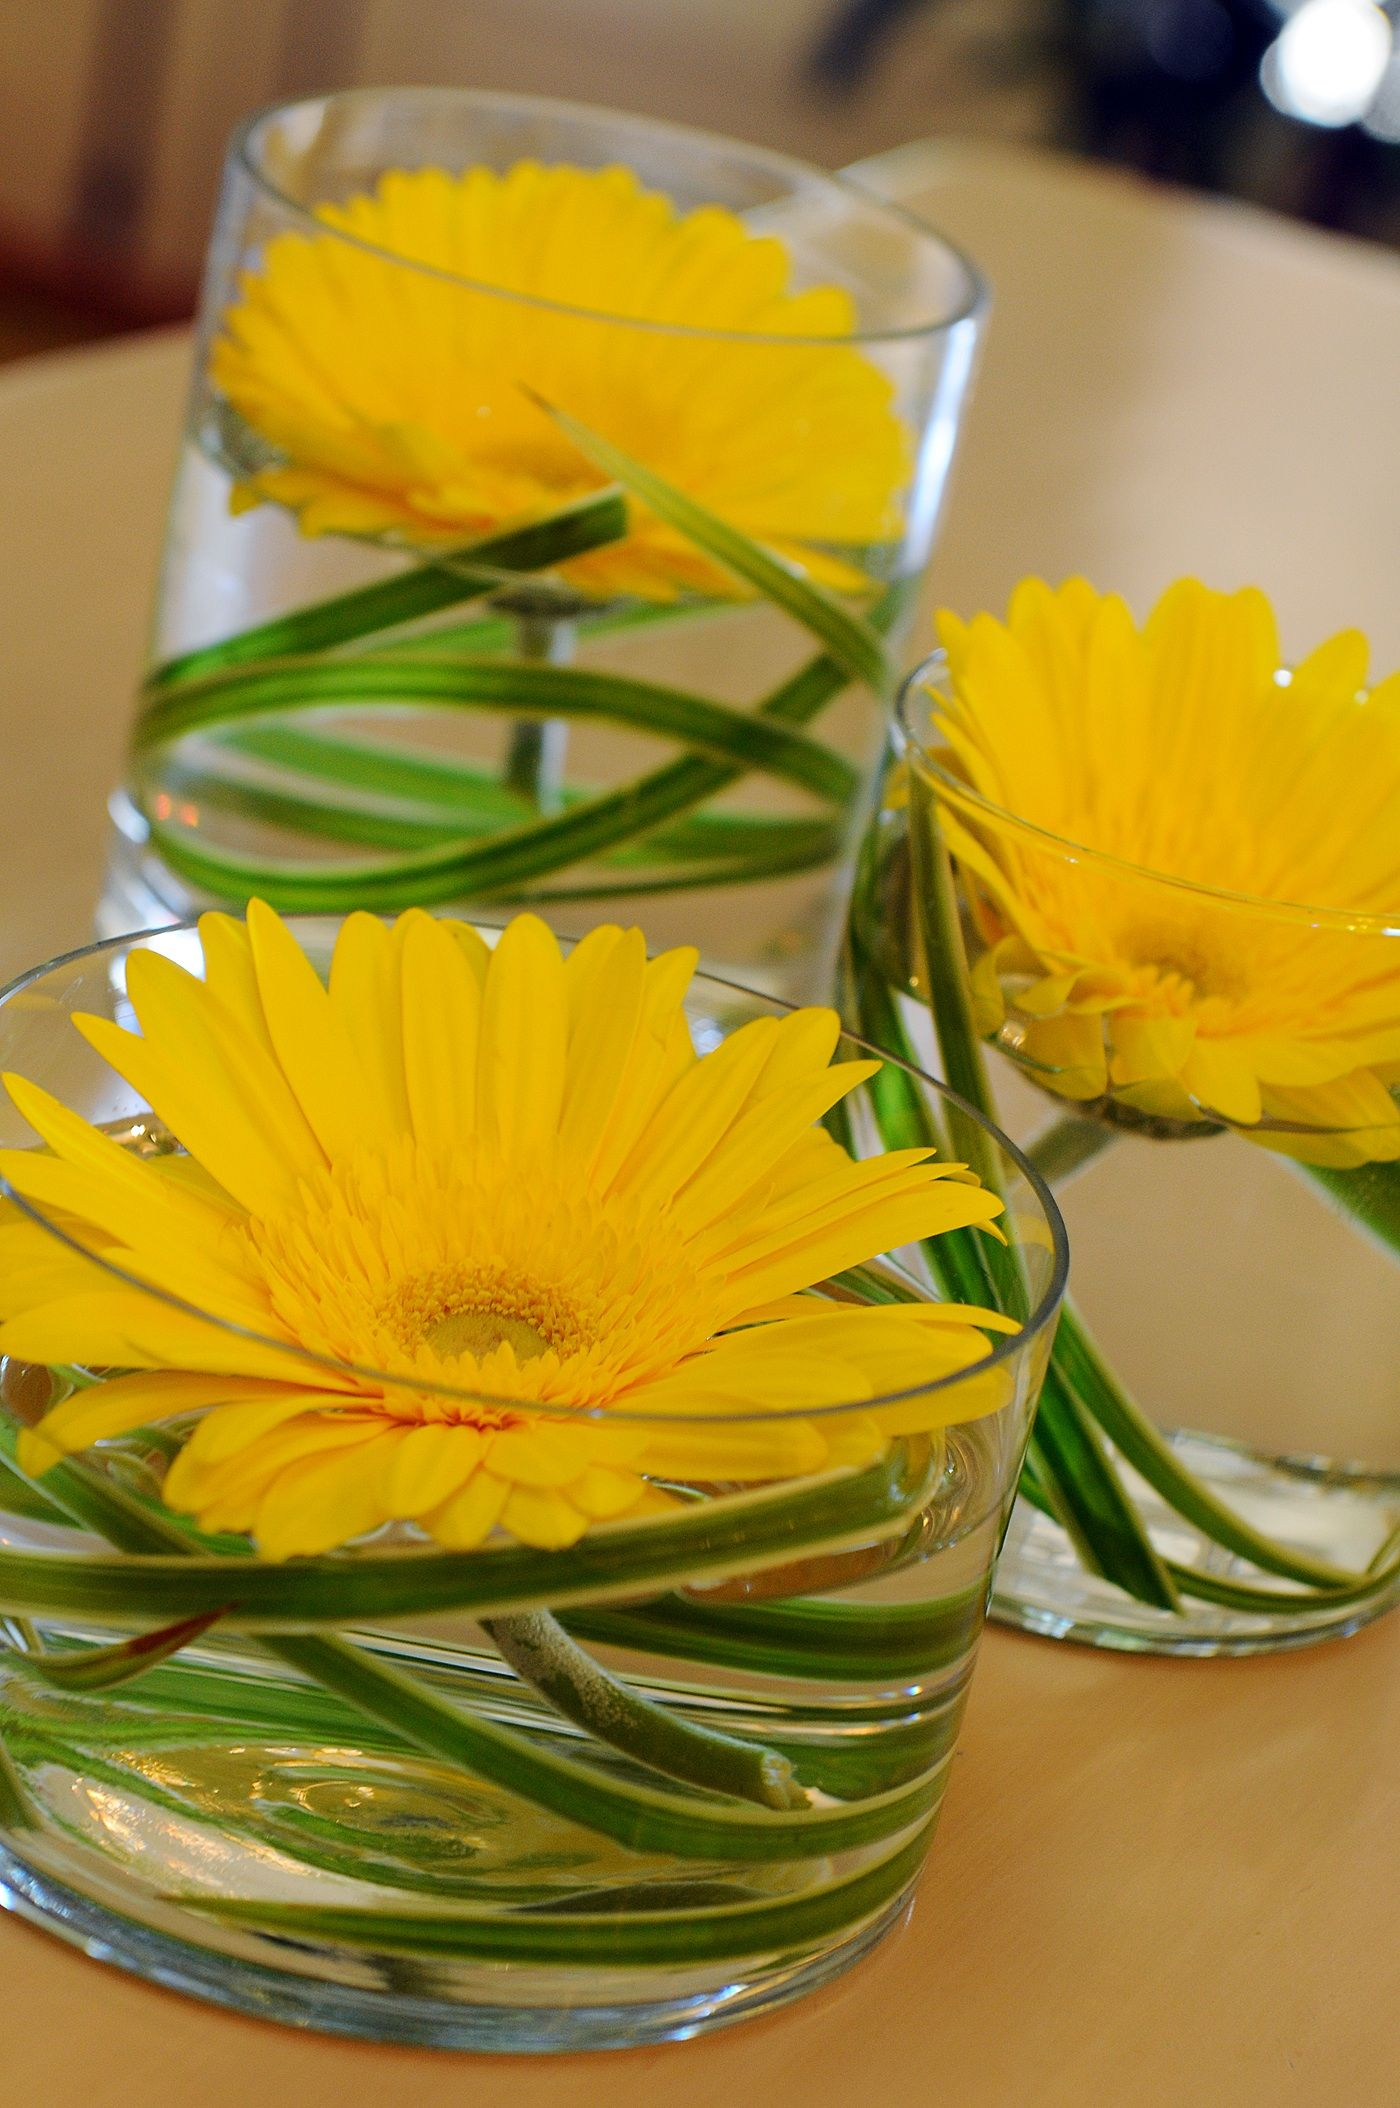 Flower Arrangement Vignette With 3 Vases Of Yellow Gerbera Daisies